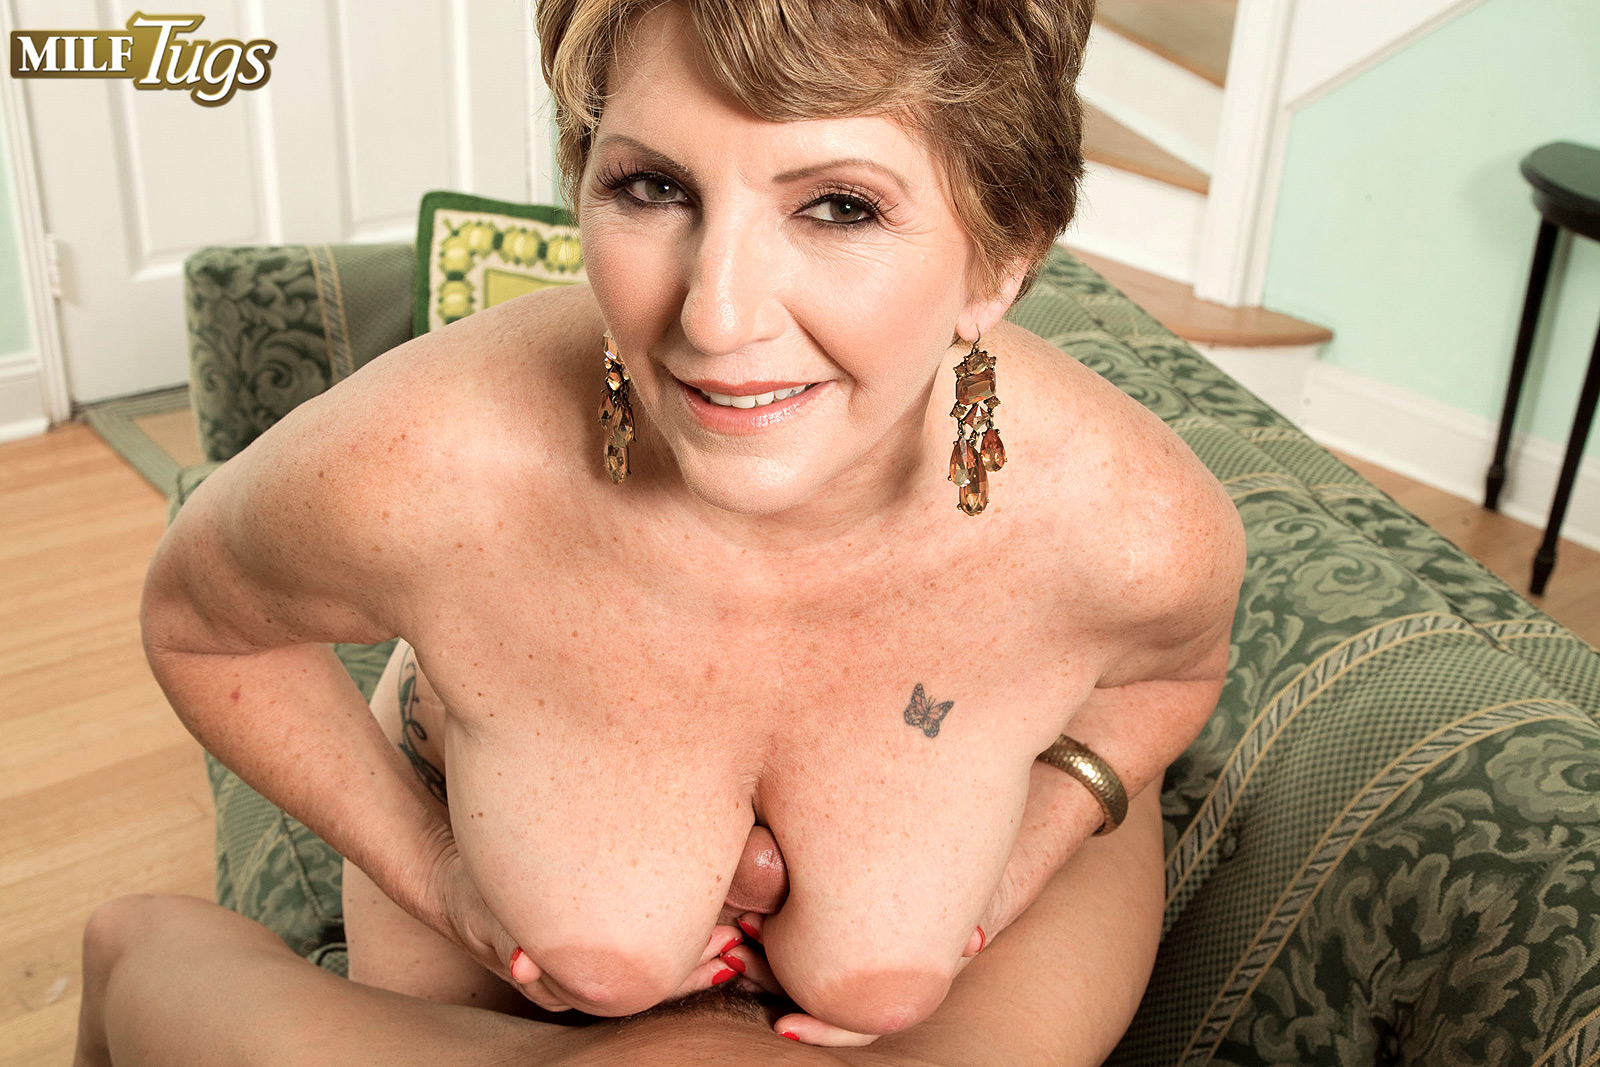 Mature women are blowing off steam 10